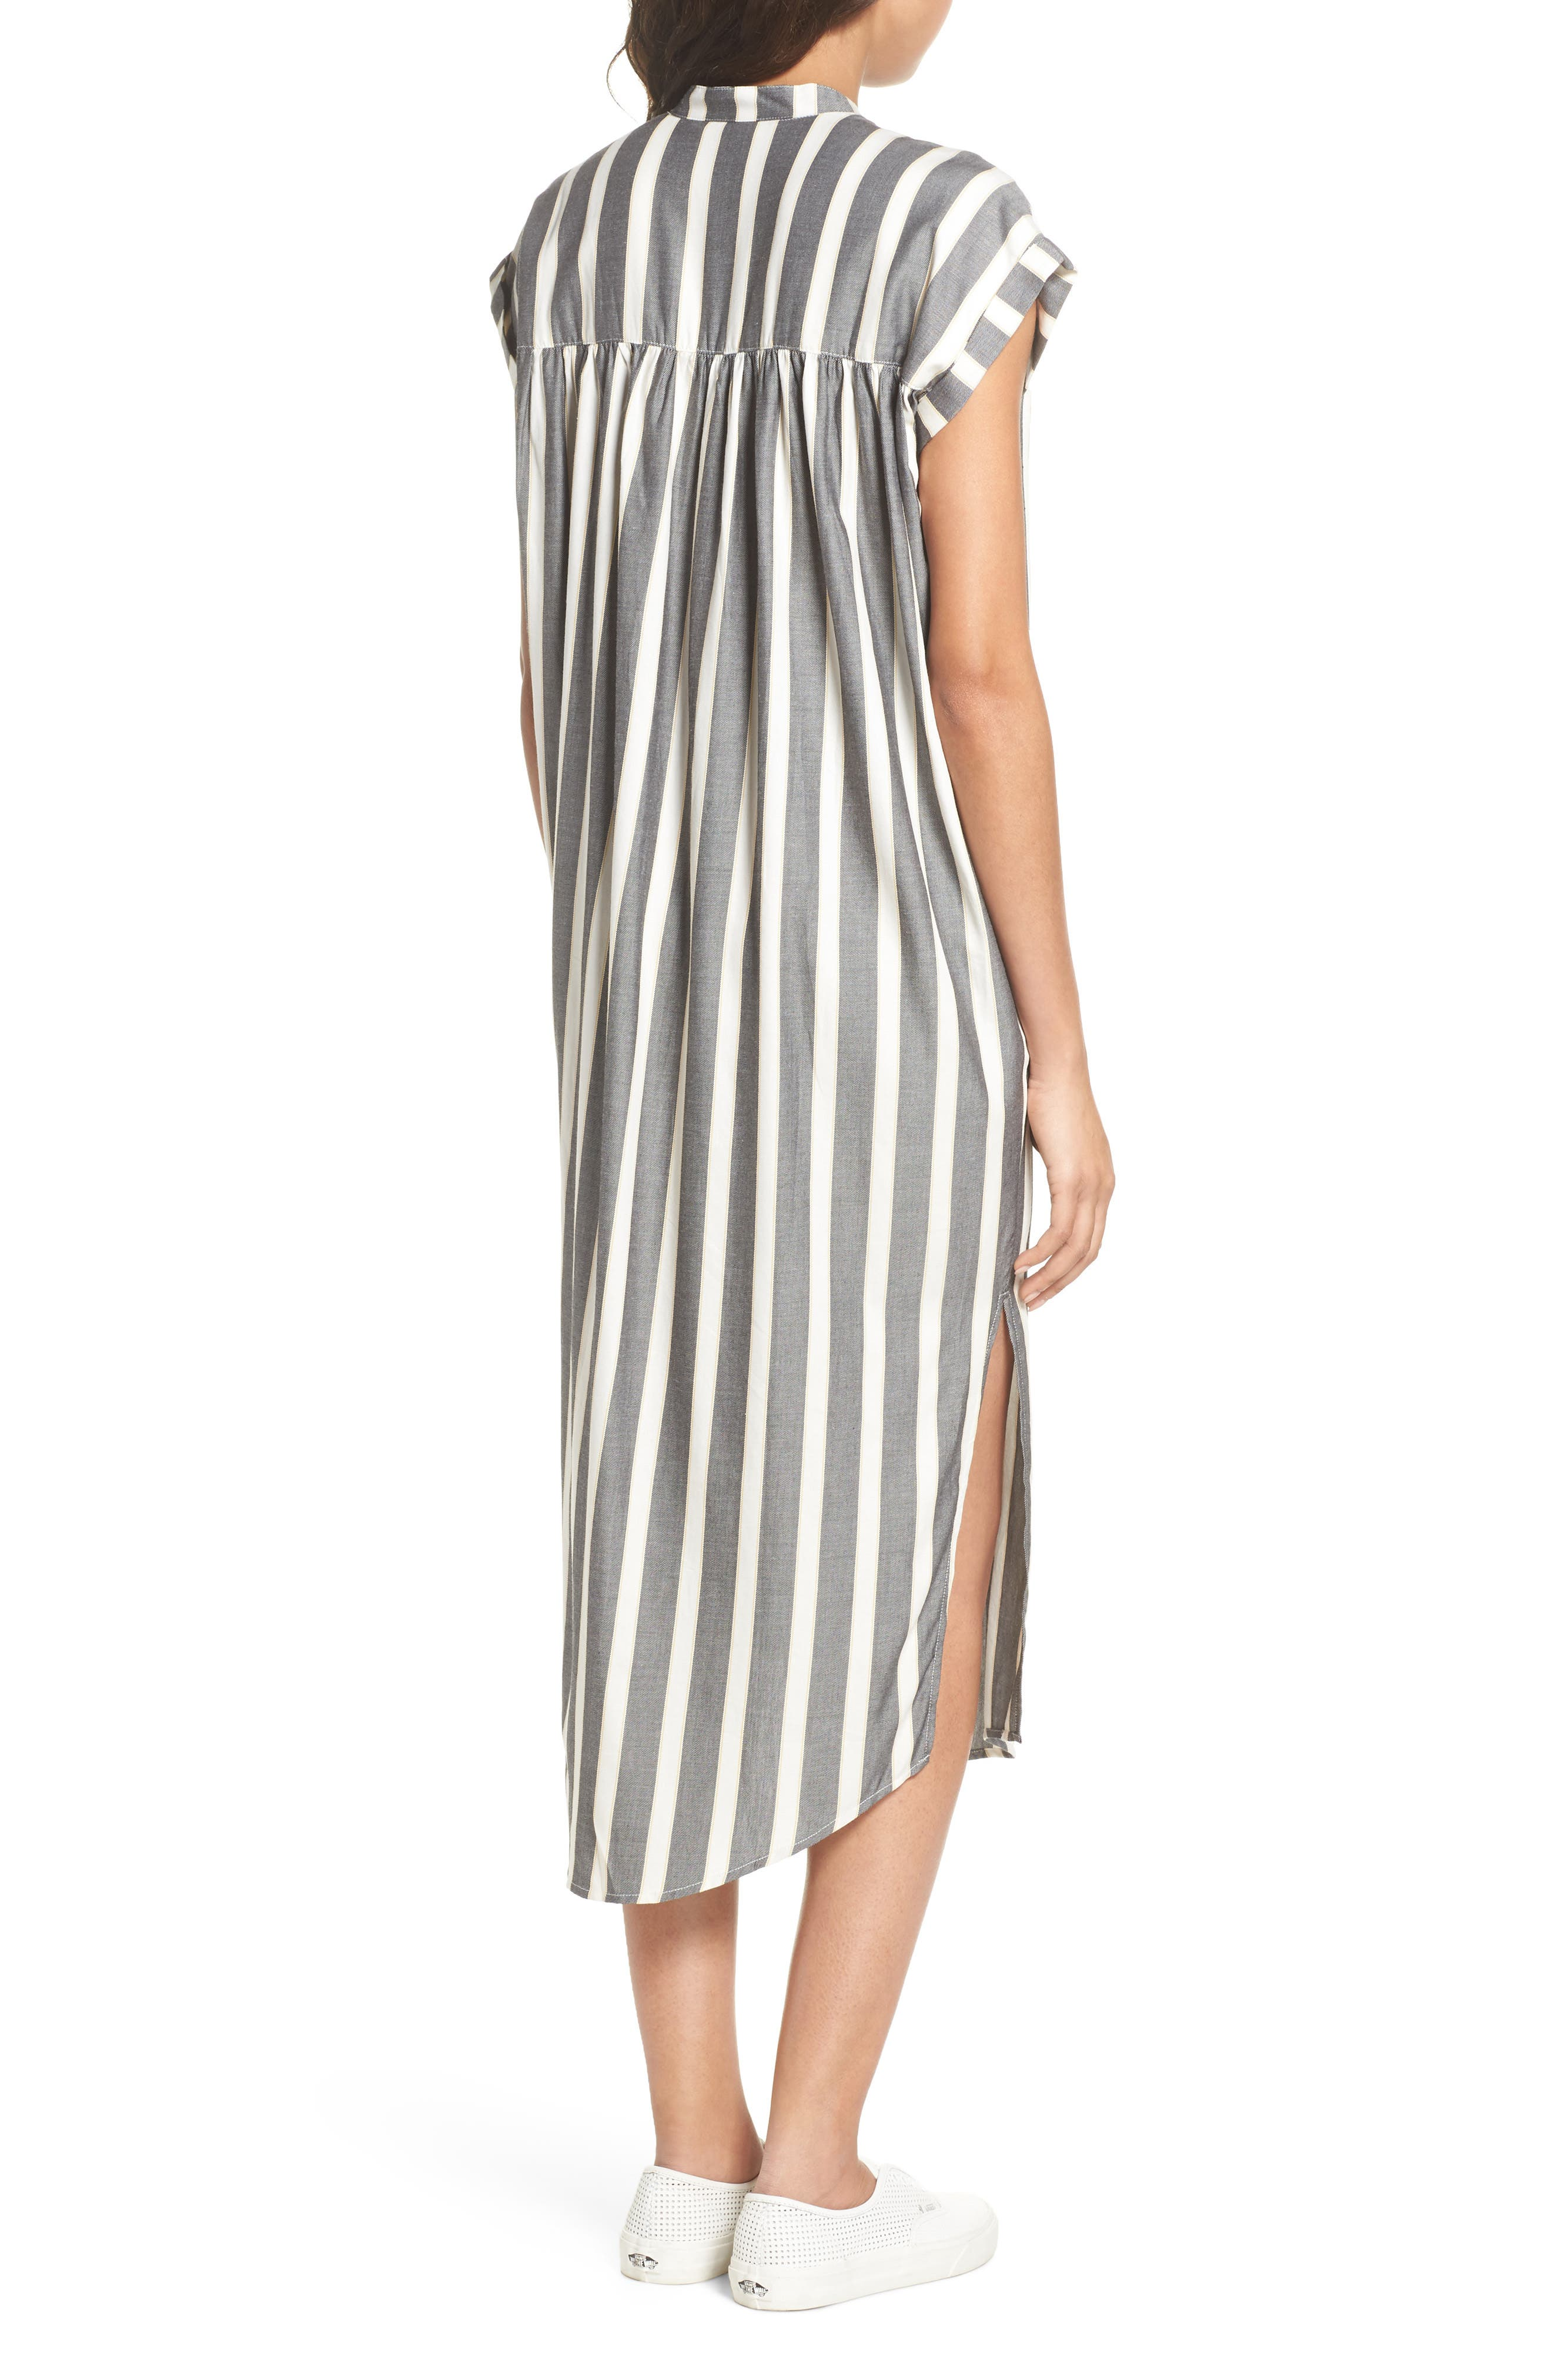 Haze Shirtdress,                             Alternate thumbnail 2, color,                             Black With Cream Stripe